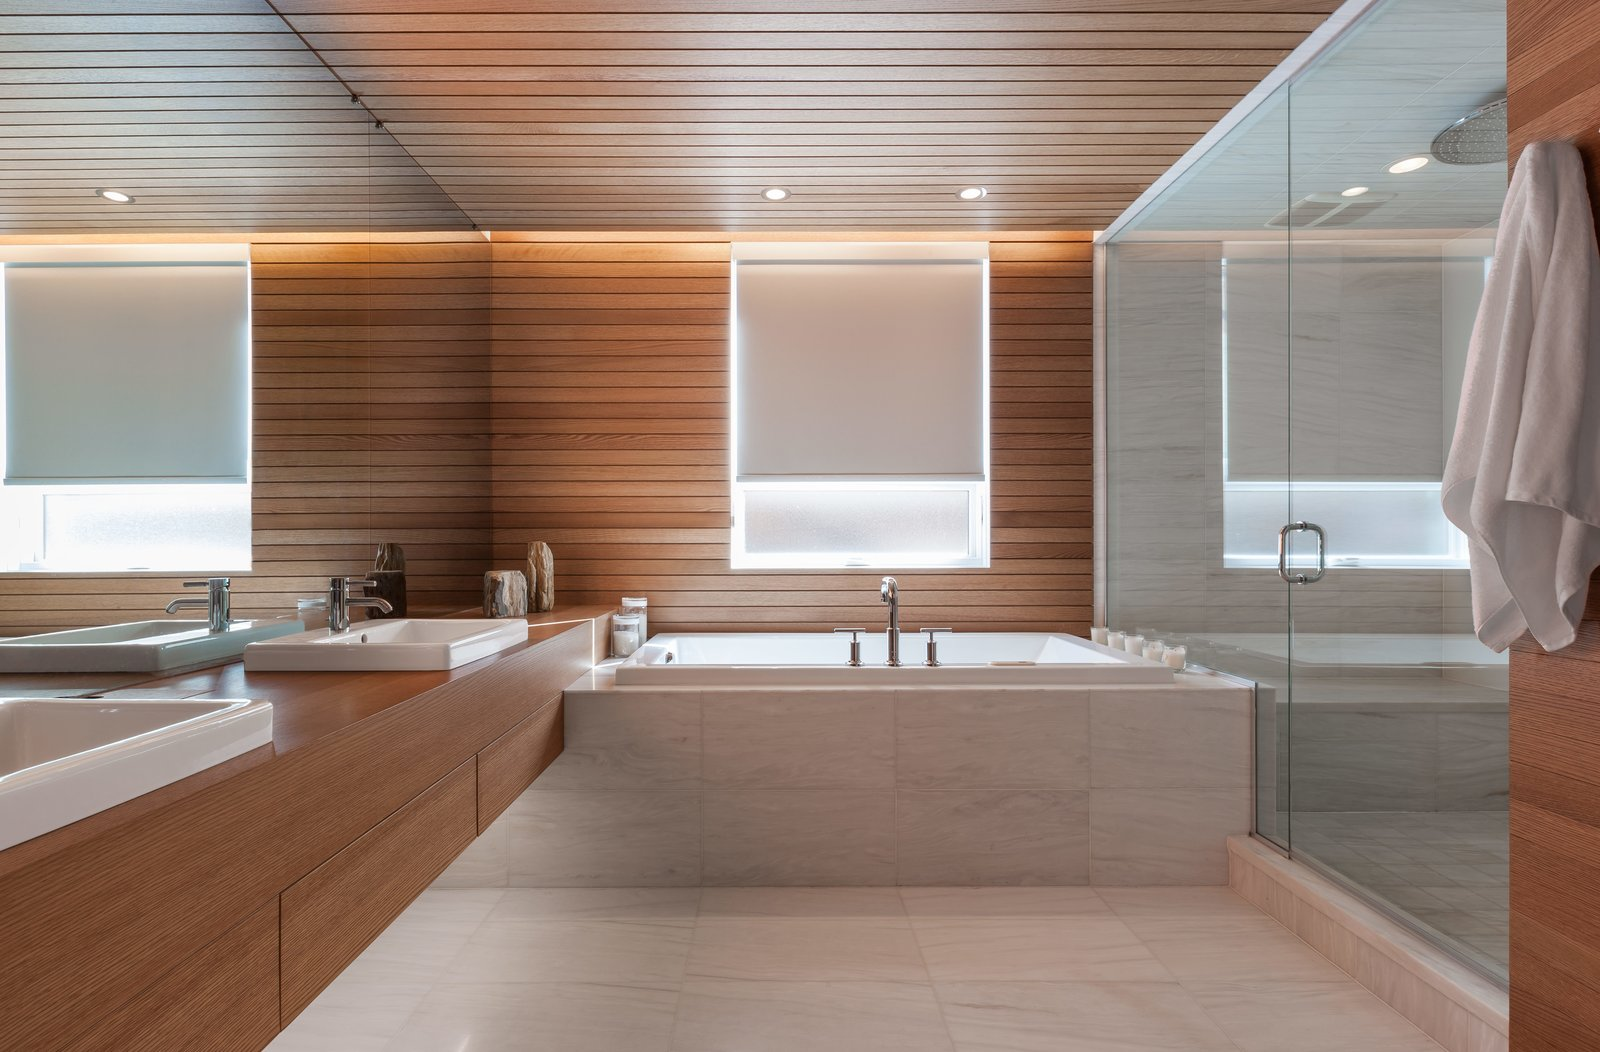 The bathrooms saw the least significant changes. In the one nearest to the master bedroom, the shower and tub are original. White oak paneling provides continuity between the newly renovated spaces. Tagged: Bath Room, Wood Counter, Soaking Tub, Drop In Sink, Enclosed Shower, and Ceiling Lighting. Four Floors of Gadgets and Gardens in Chicago - Photo 13 of 17